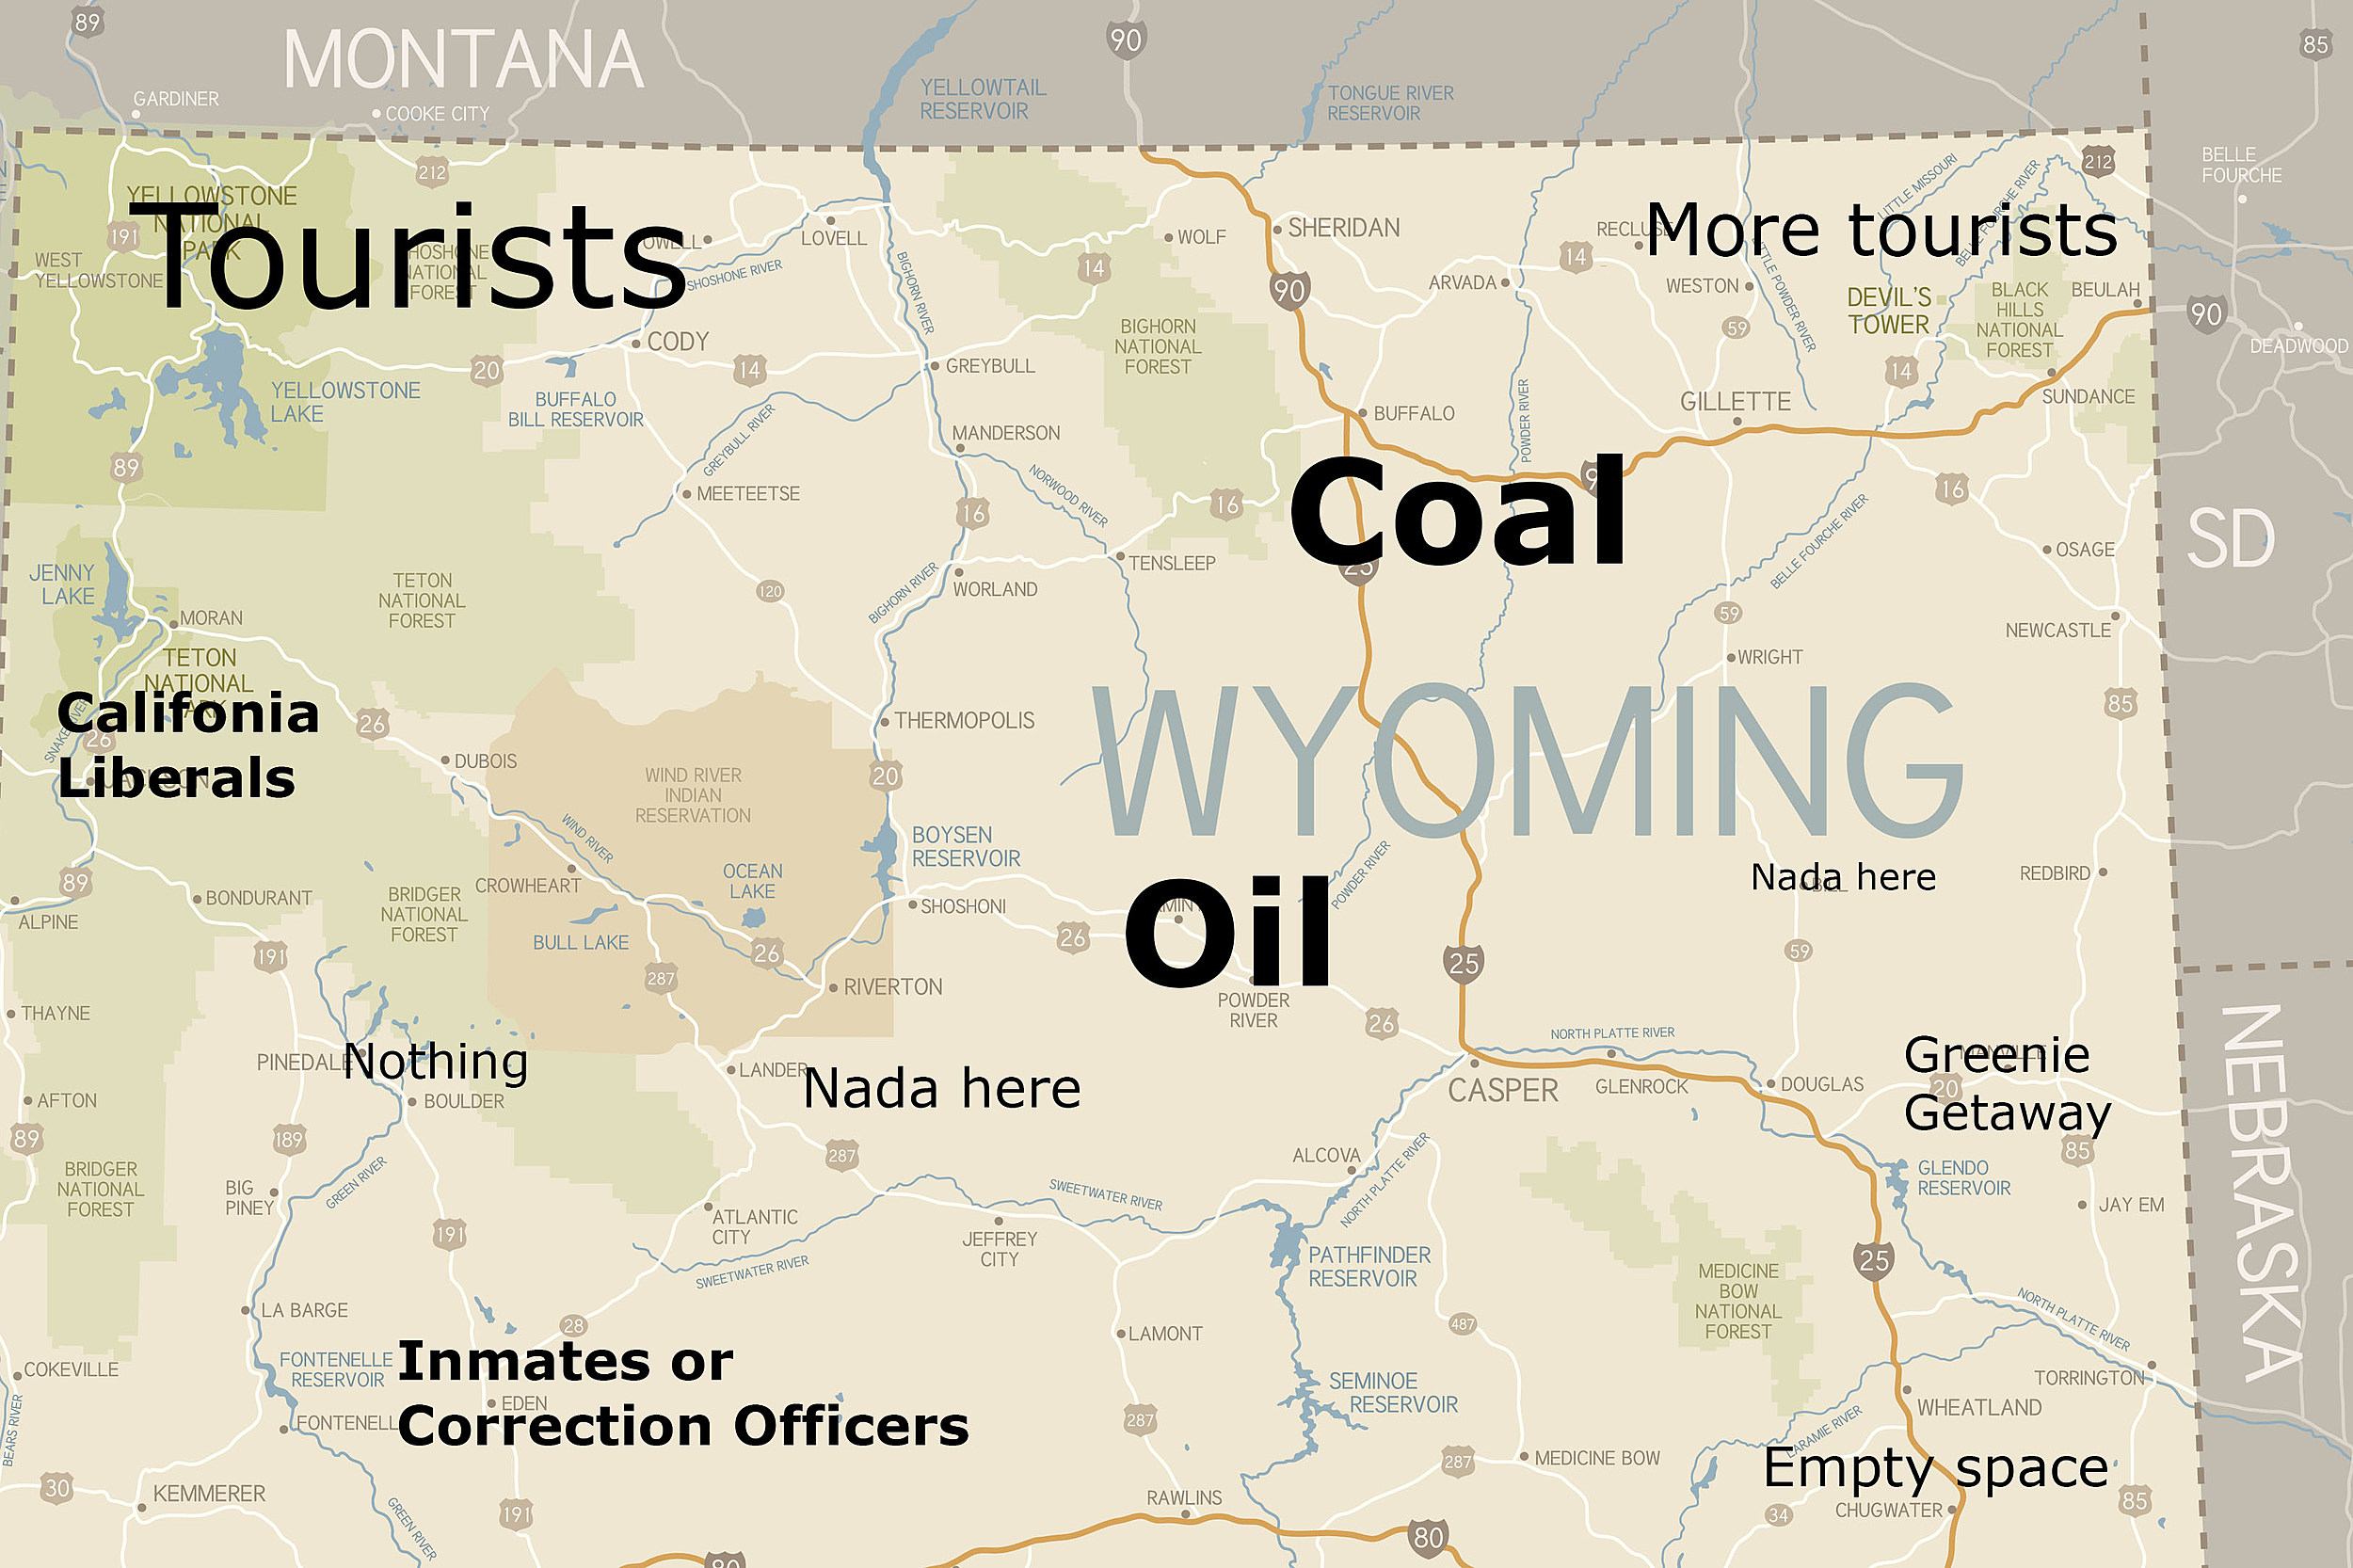 Bondurant Wyoming Map.These Judgmental Maps Of Wyoming Are Too Bad To Miss Photos